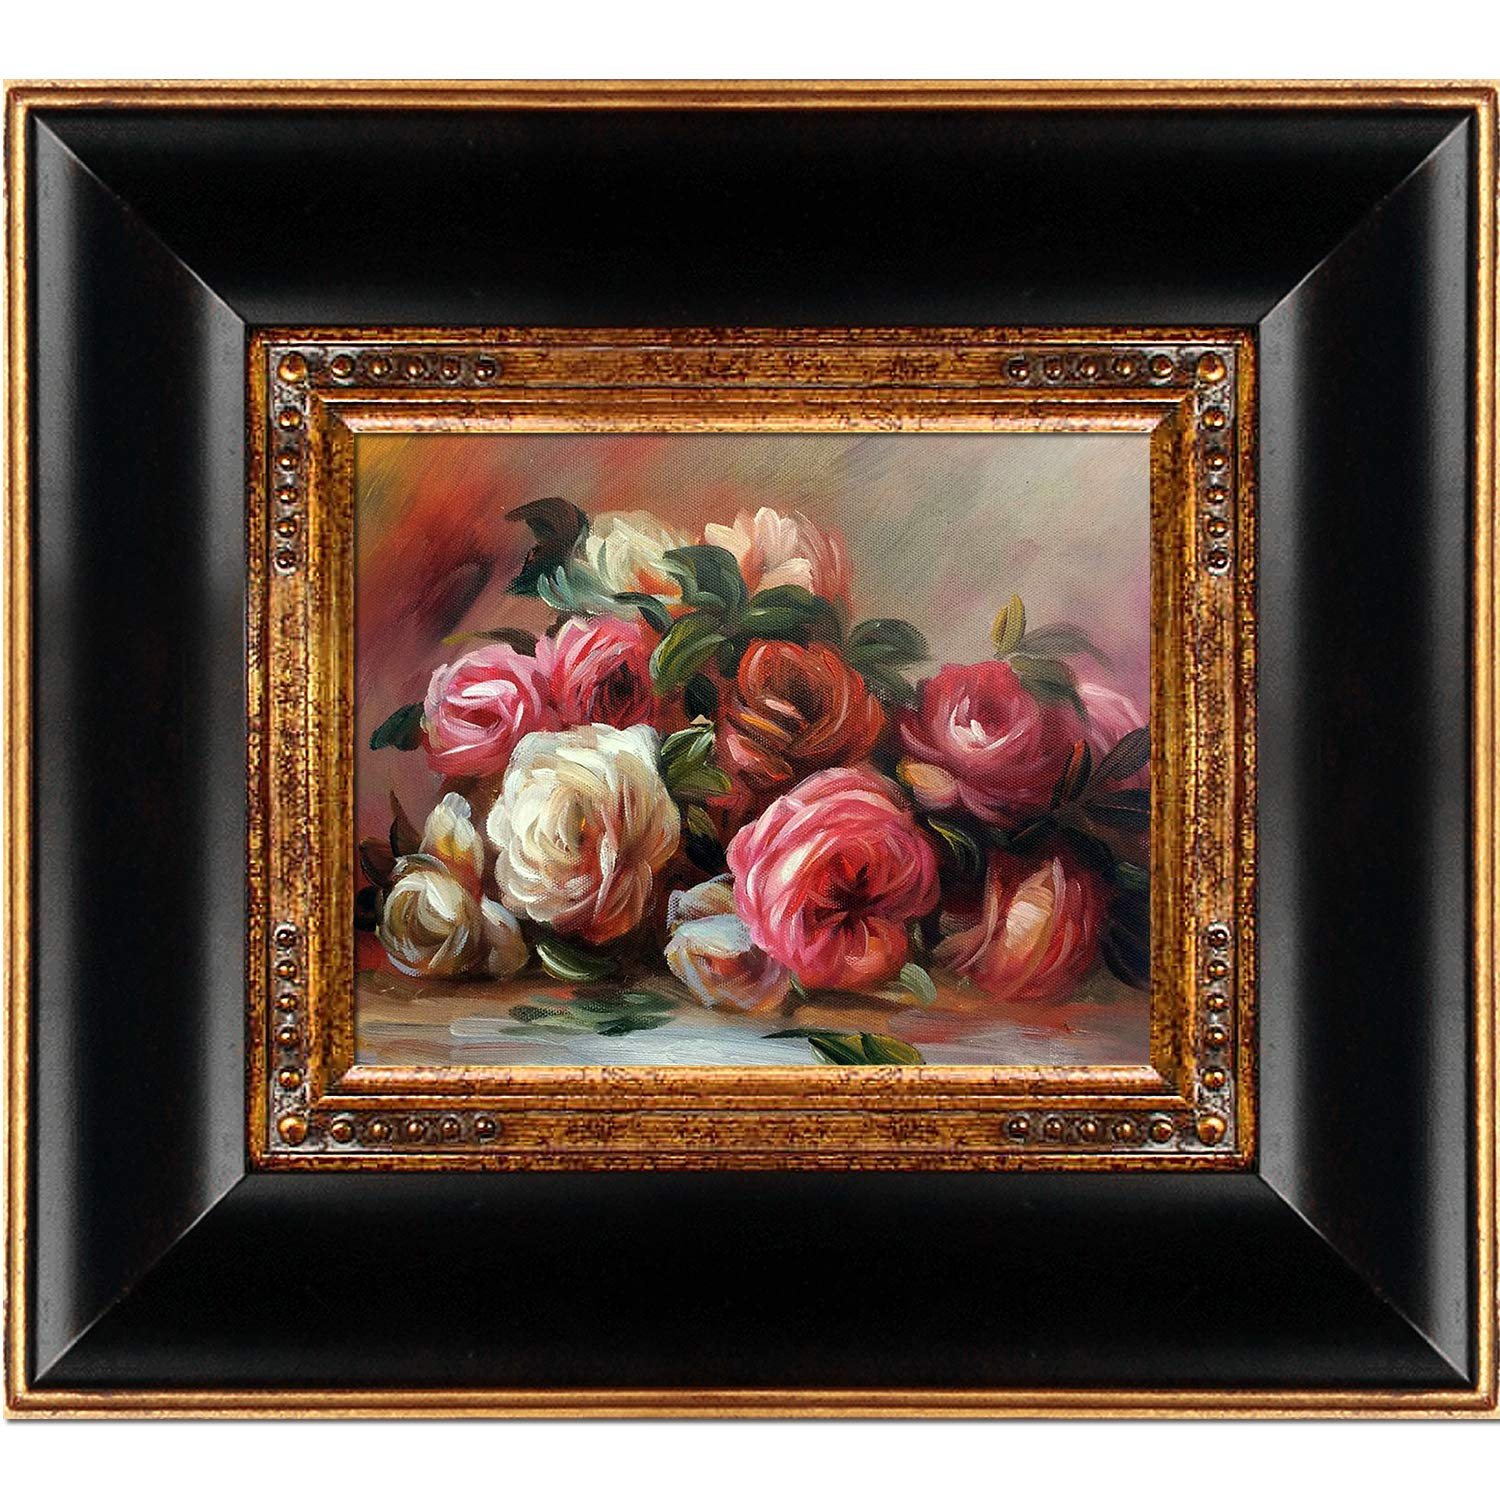 overstockArt Discarded Roses By Pierre-Auguste Renoir Framed Hand Painted Oil On Canvas with Opulent Frame B01I3D0P1O